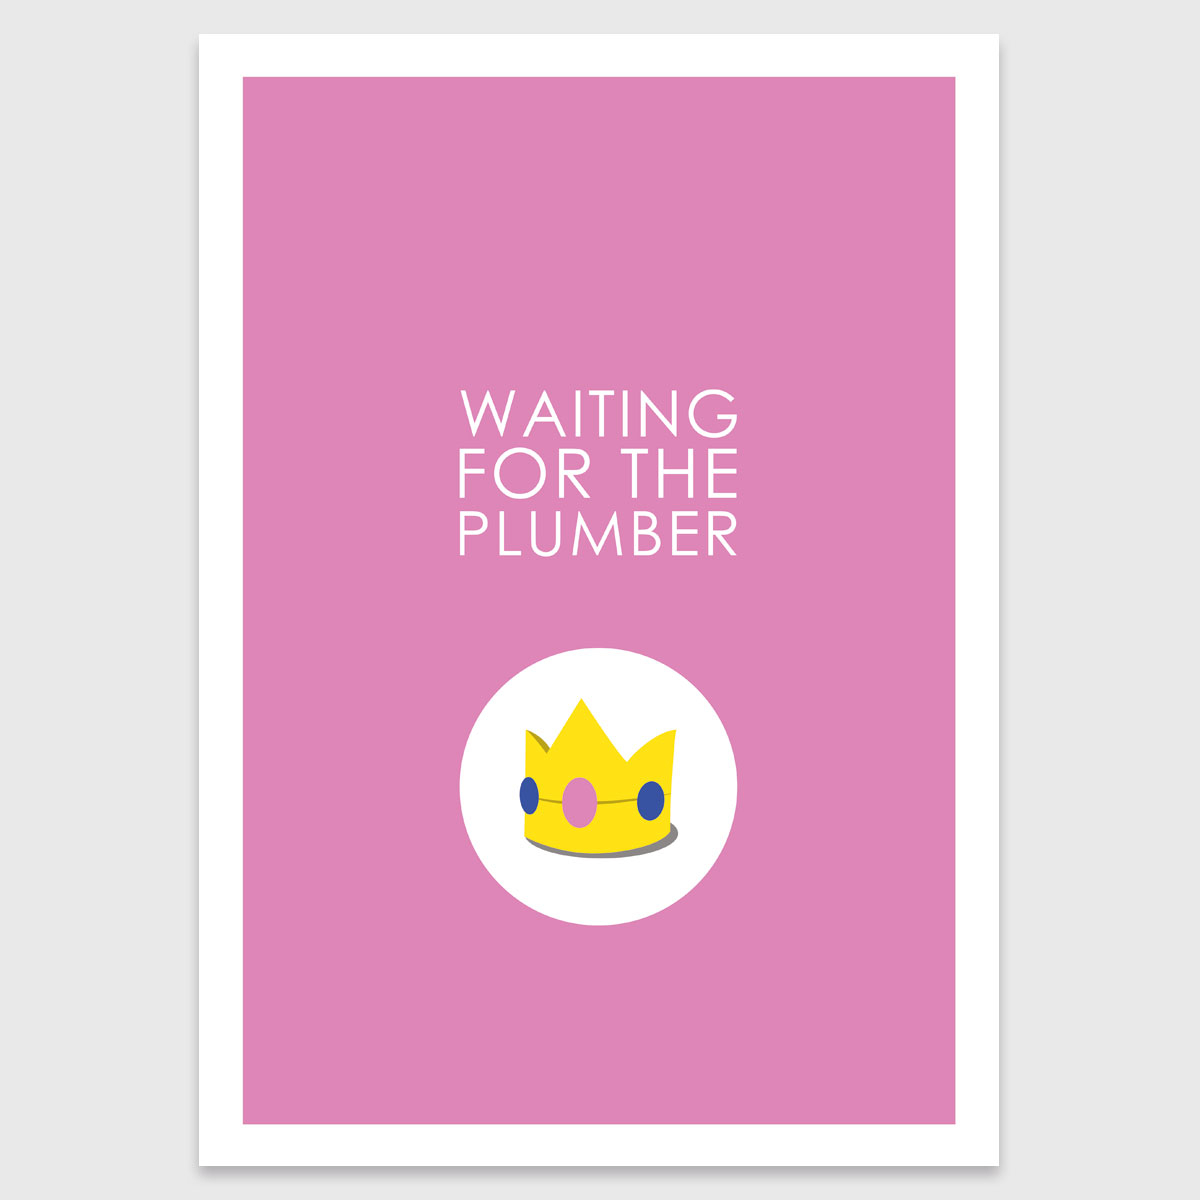 Photograph: Retro print: Waiting for the plumber